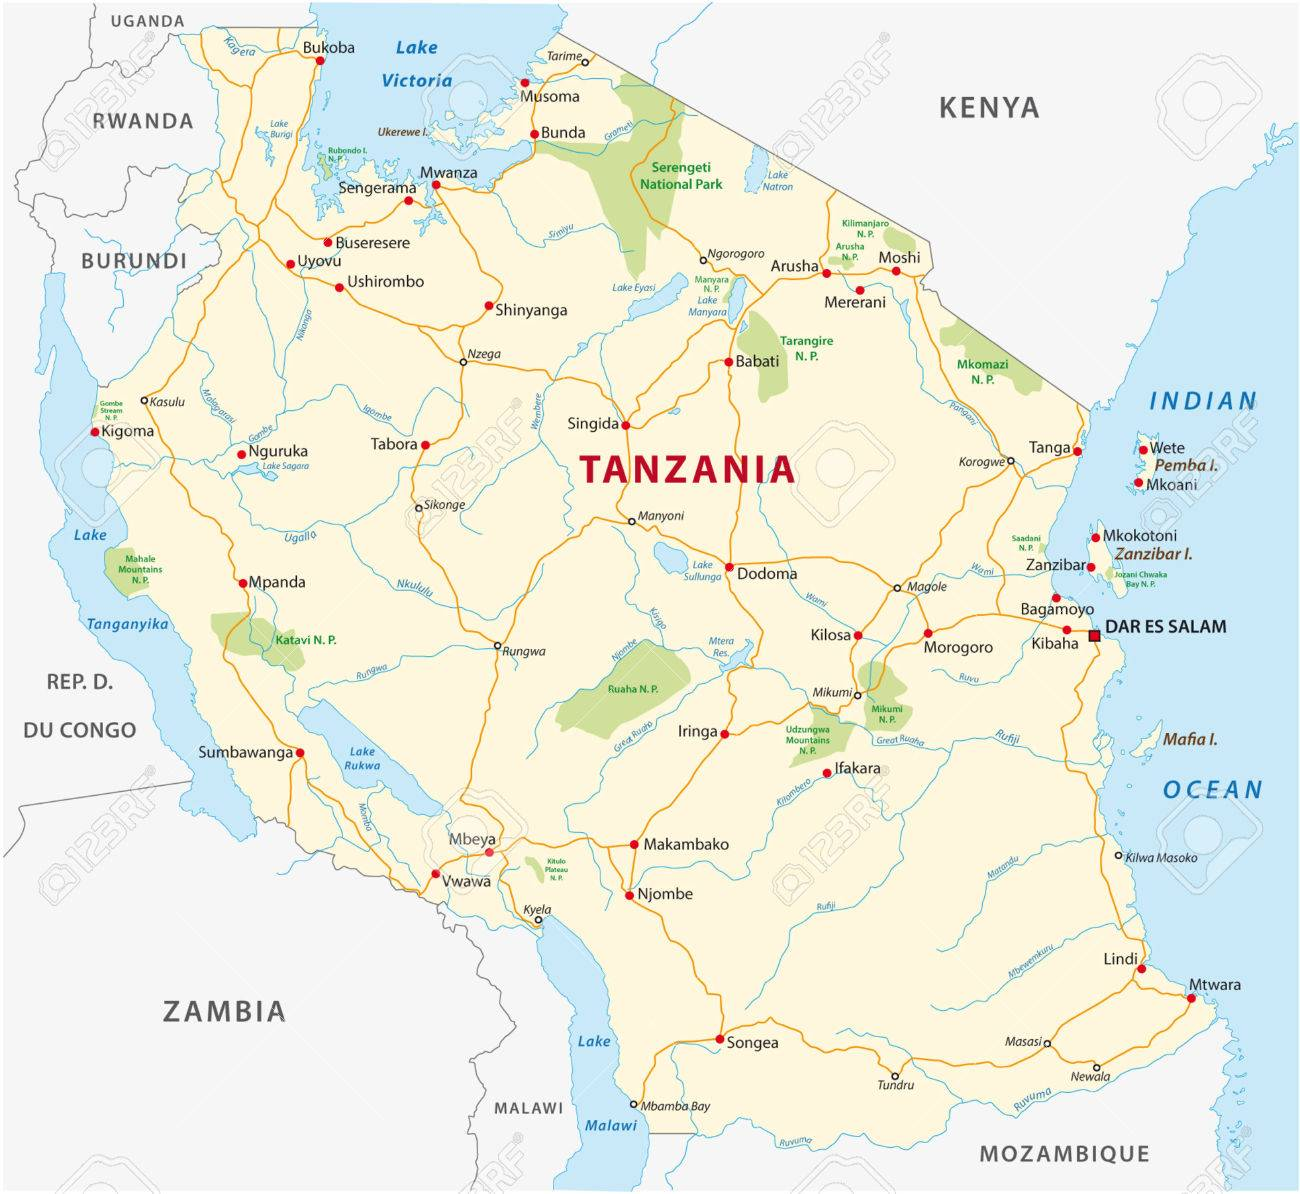 Tanzania Road And National Park Map Royalty Free Cliparts Vectors